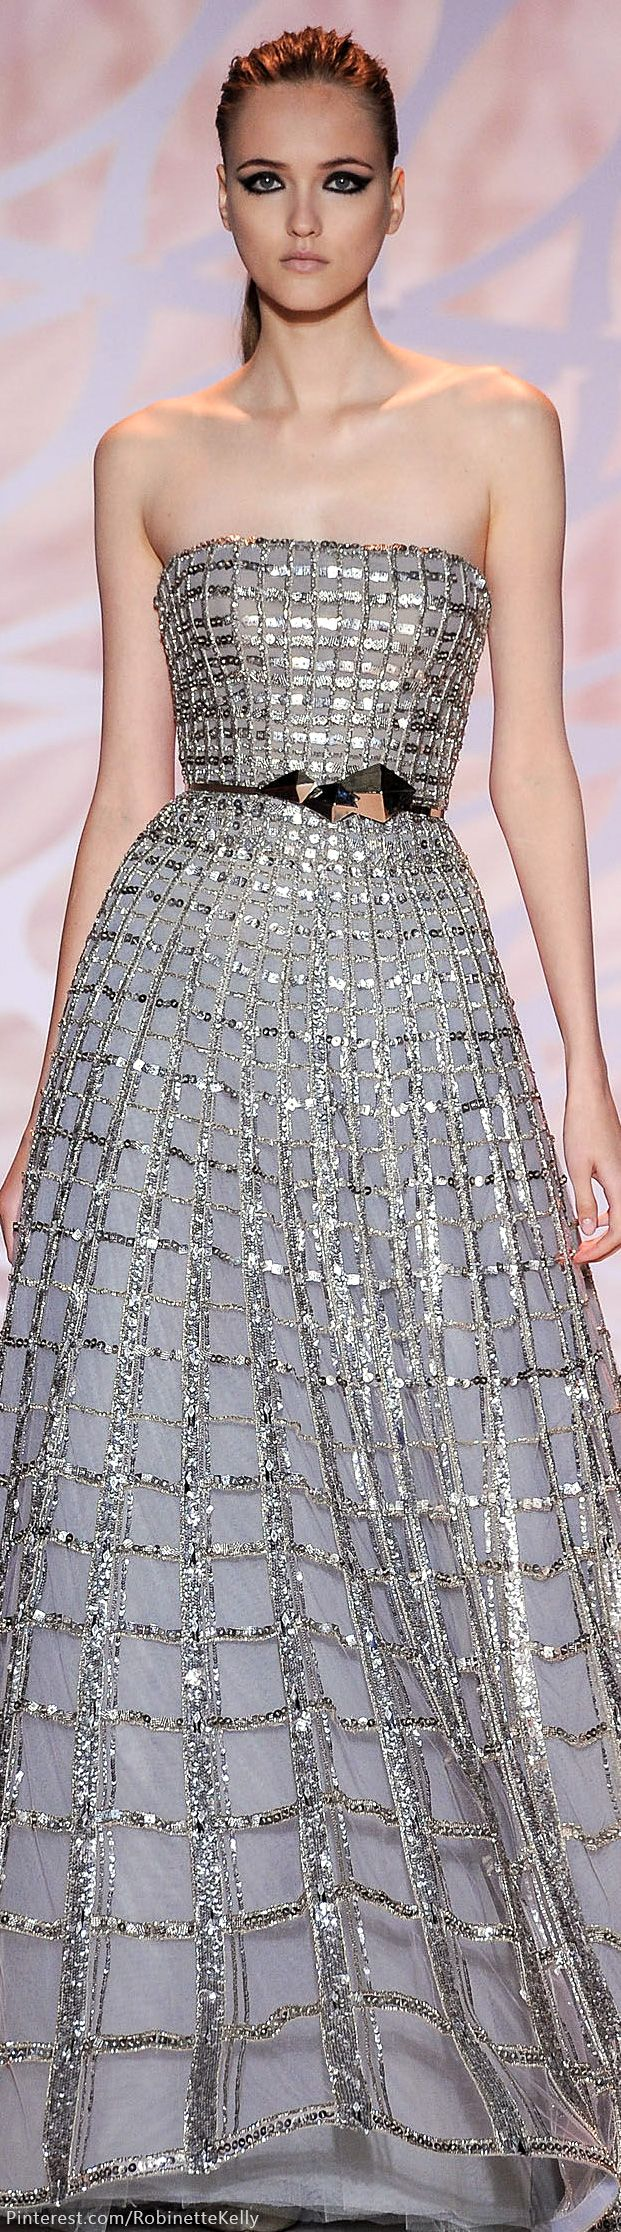 Gown by Zuhair Murad 2015: